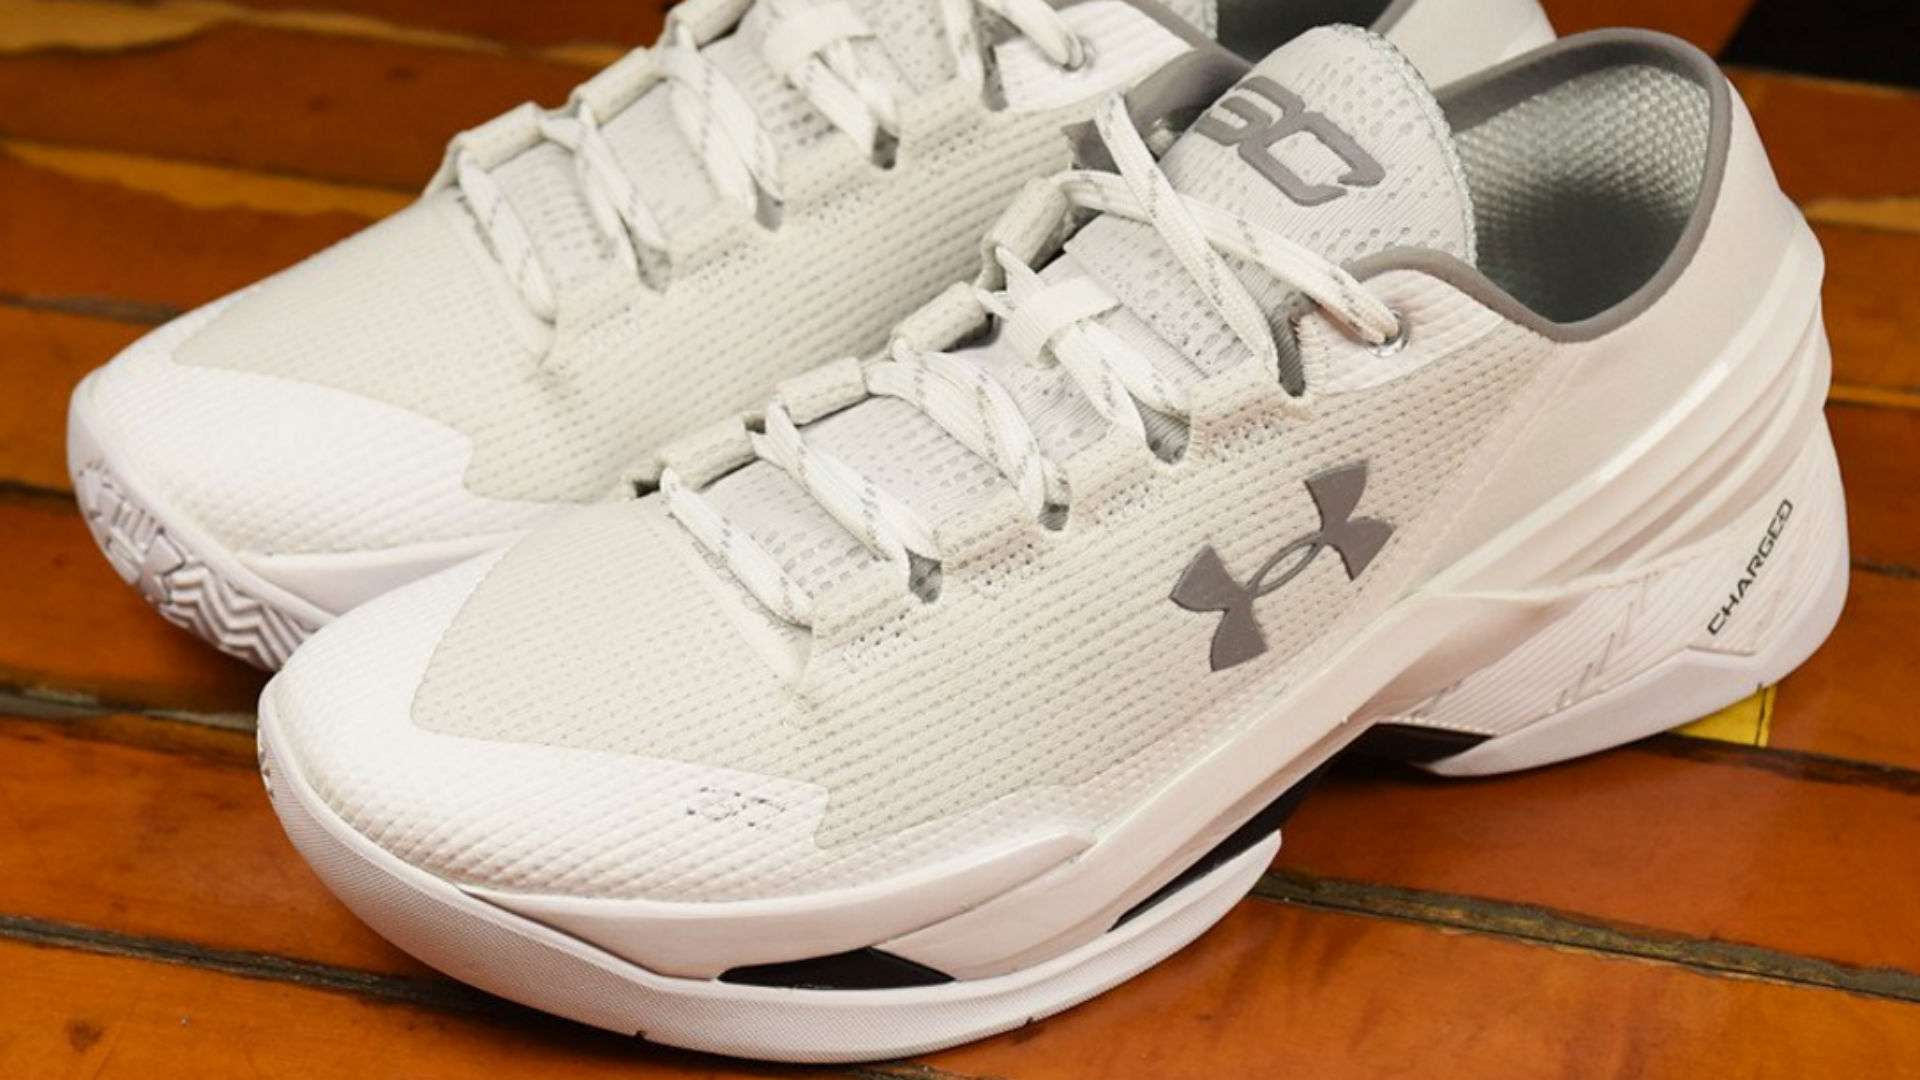 281507bf84b7 Stephen Curry s new sneakers get roasted for their  dad appeal ...